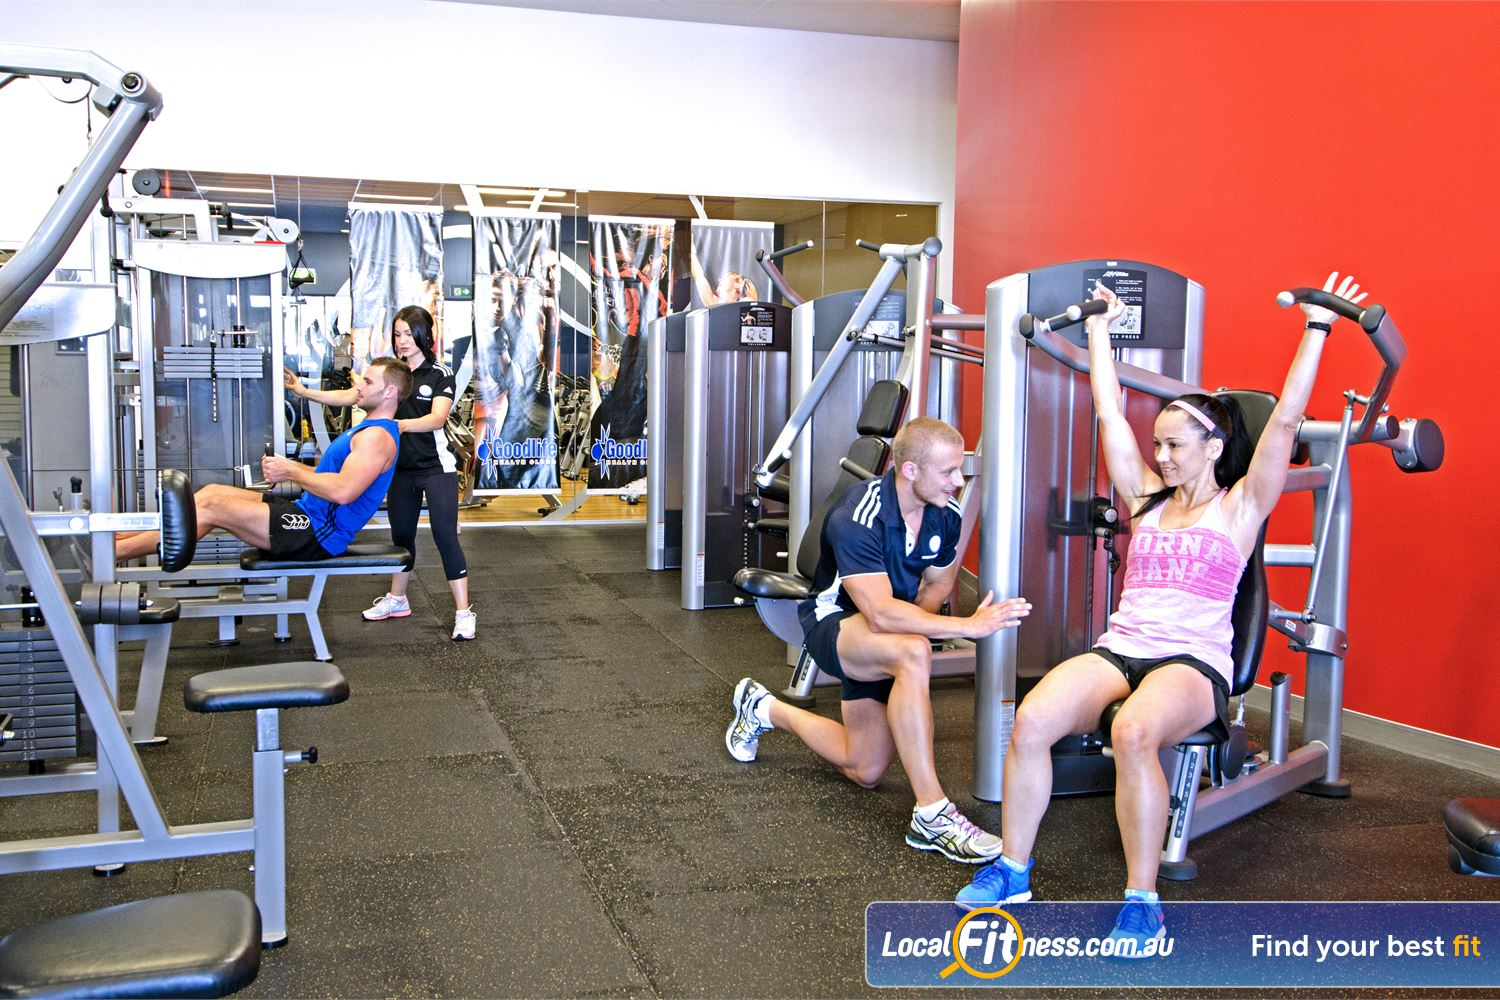 Goodlife Health Clubs Cleveland Cleveland gym instructors specialise in weight-loss and women's programs.